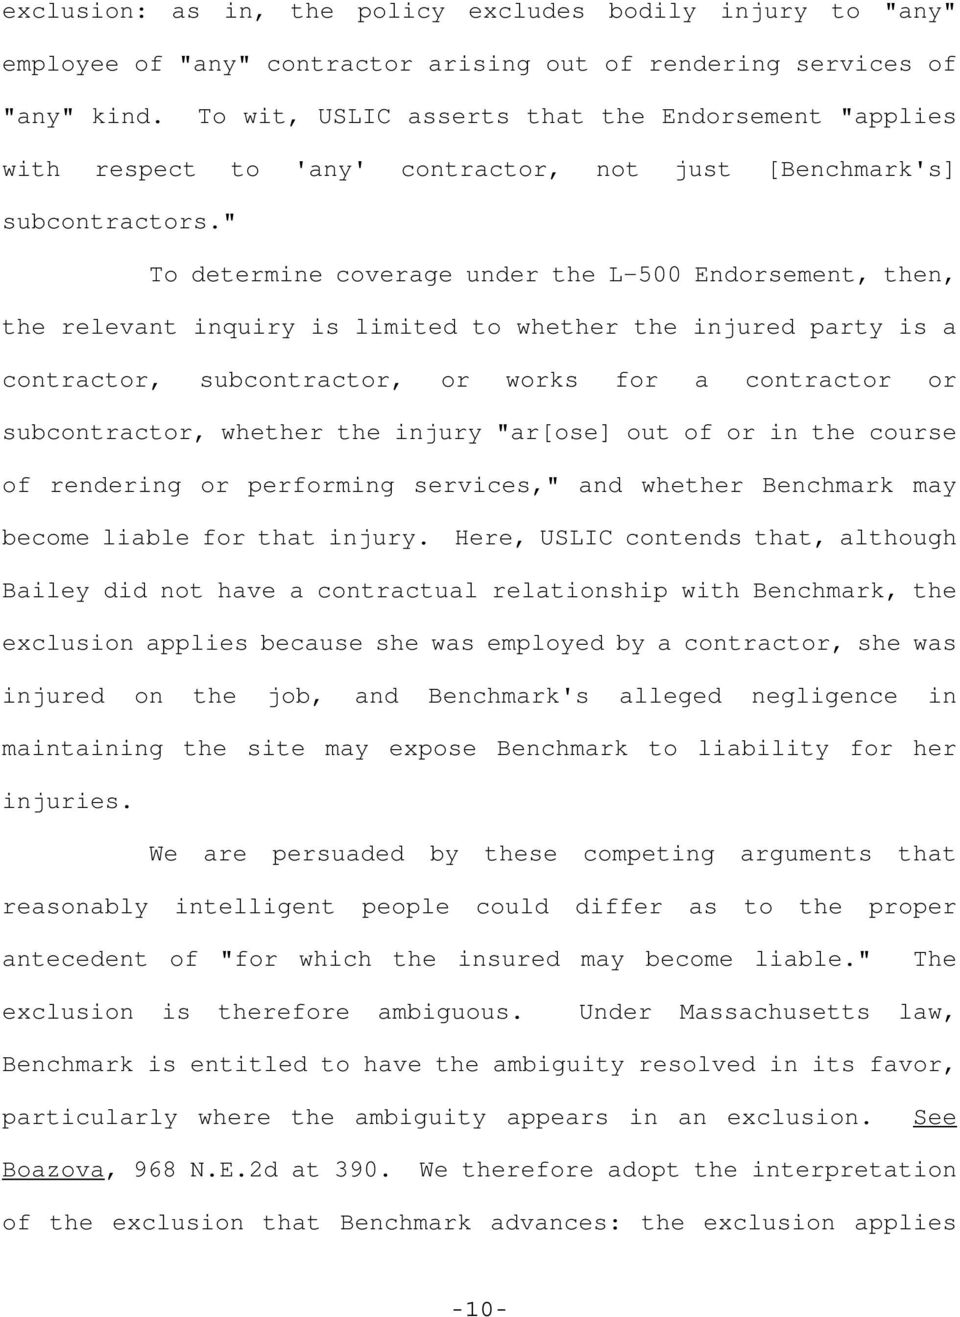 """ To determine coverage under the L-500 Endorsement, then, the relevant inquiry is limited to whether the injured party is a contractor, subcontractor, or works for a contractor or subcontractor,"